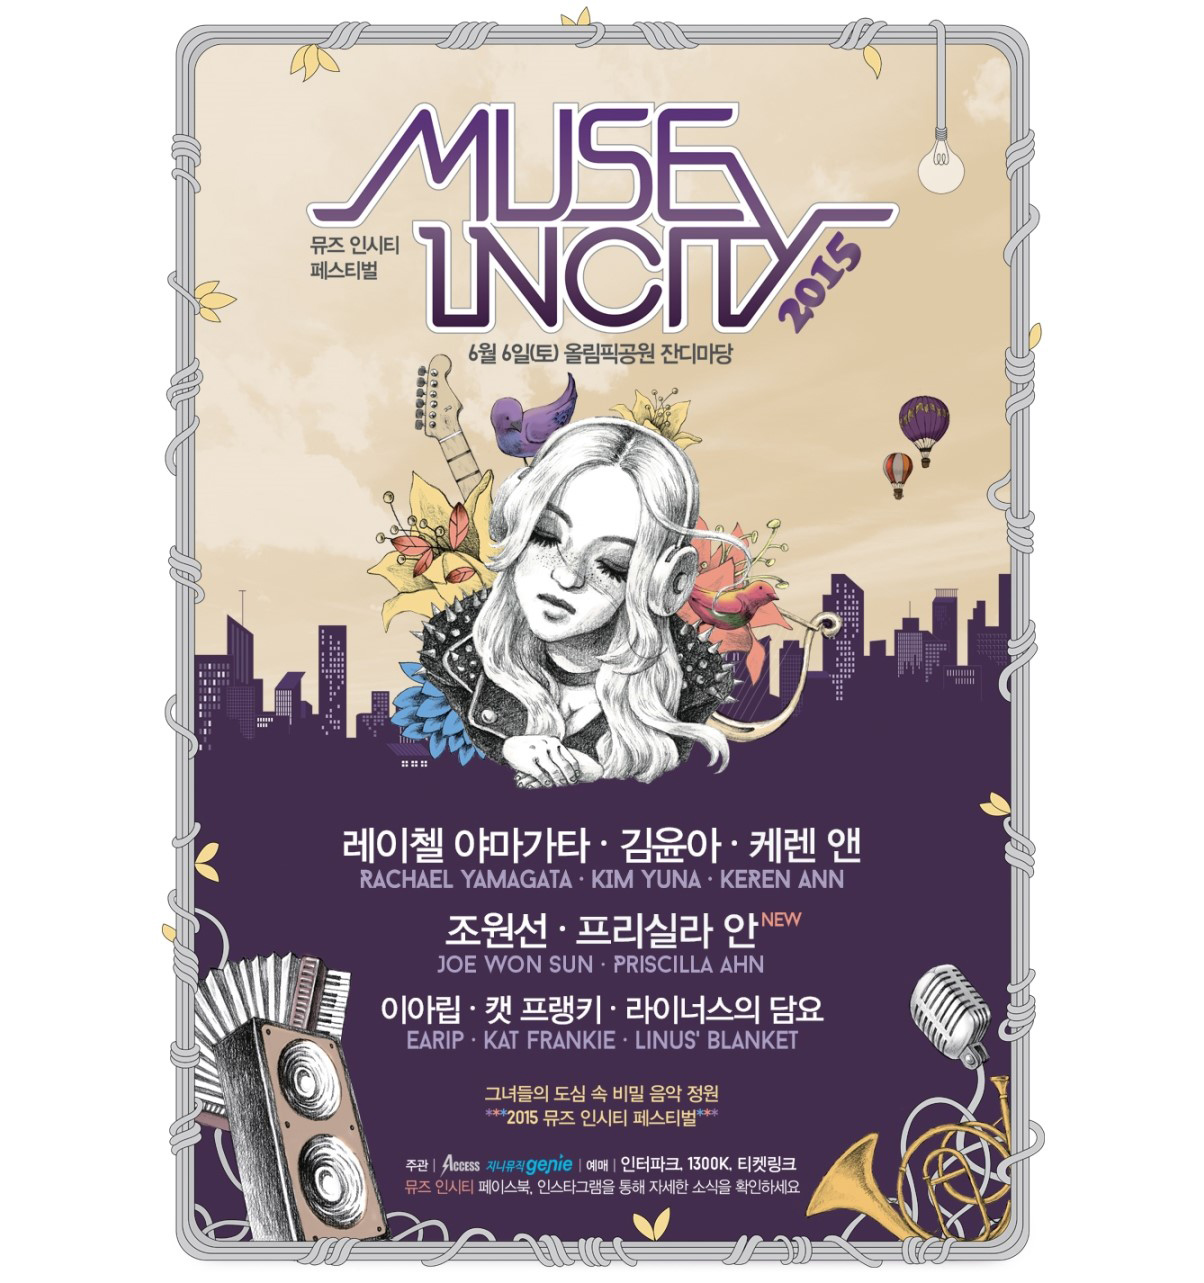 Graphic design for MUSE INCTY FESTIVAL Seoul, Korea 2015  responsible for designing the main visual art work